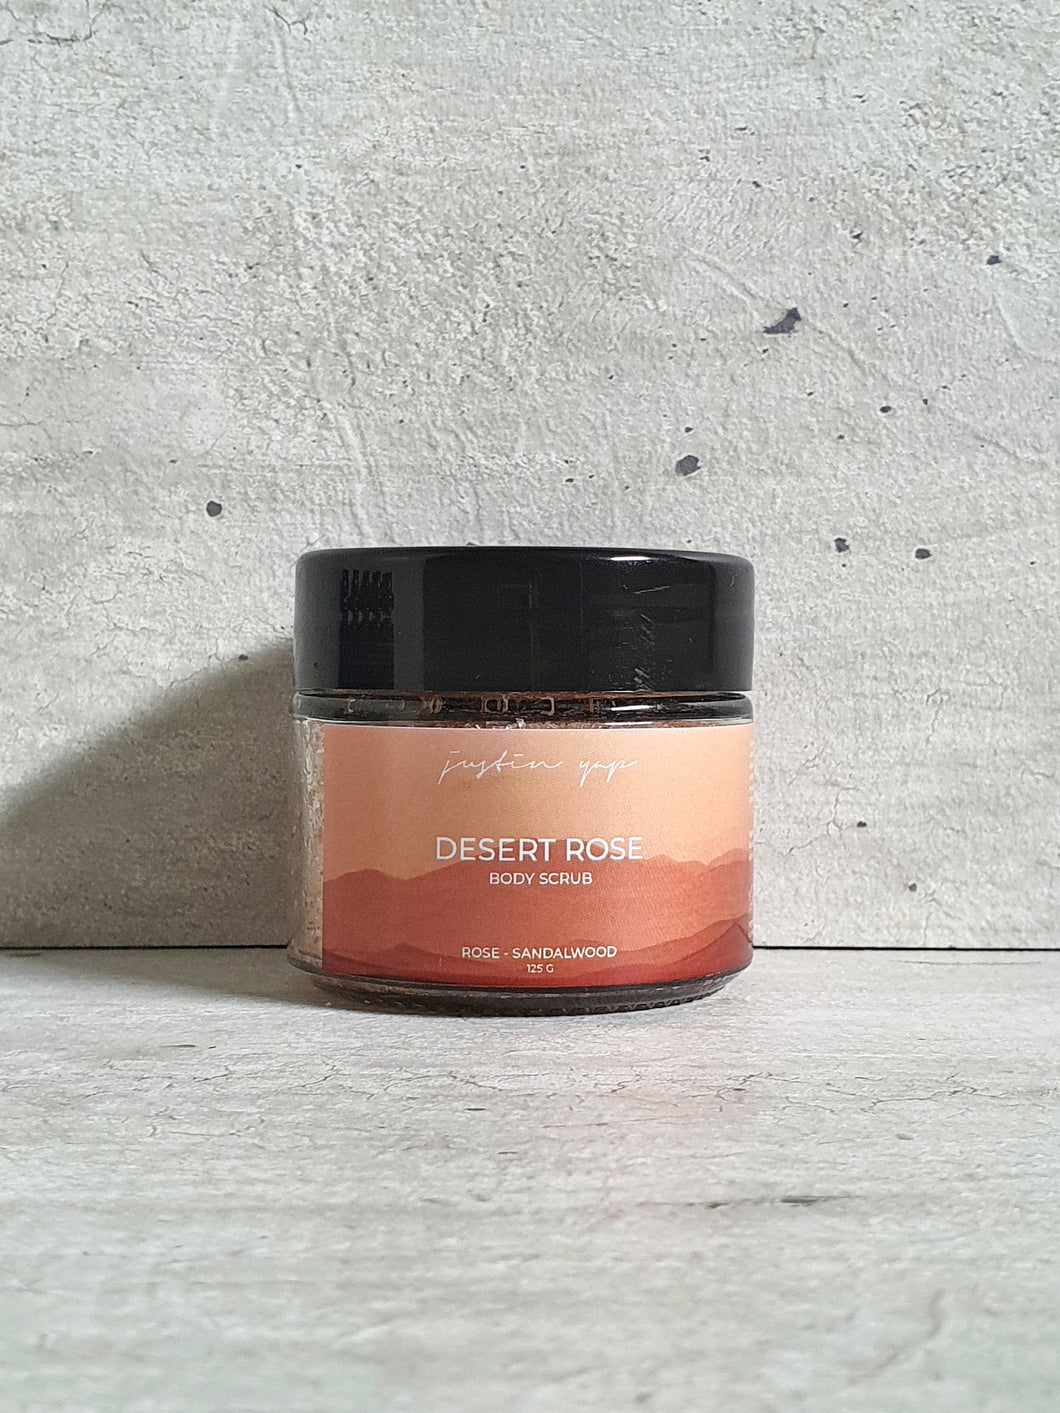 Desert Rose Body Scrub - Rose / Sandalwood